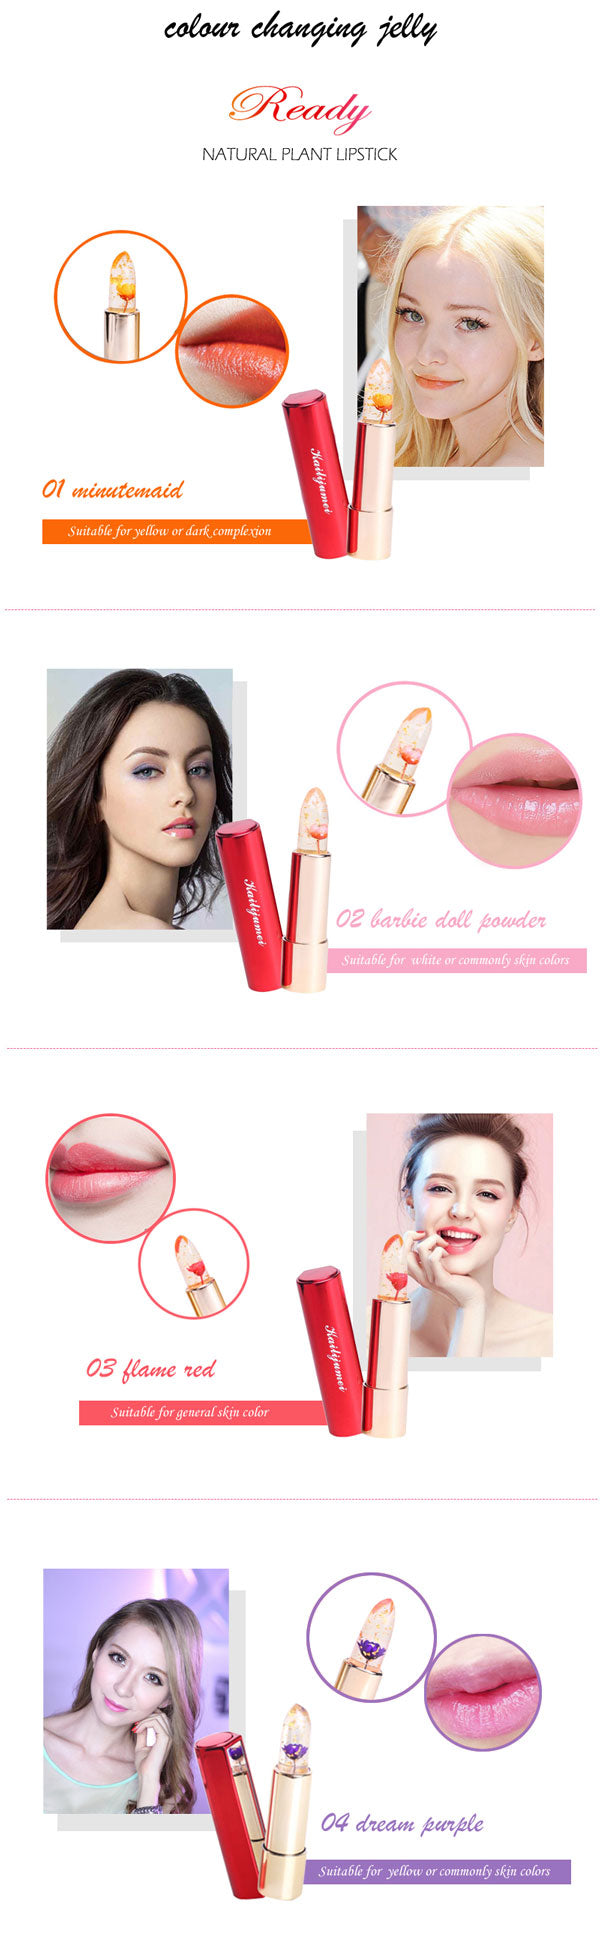 Magic Flower Lipstick - 4 Colors To Choose From